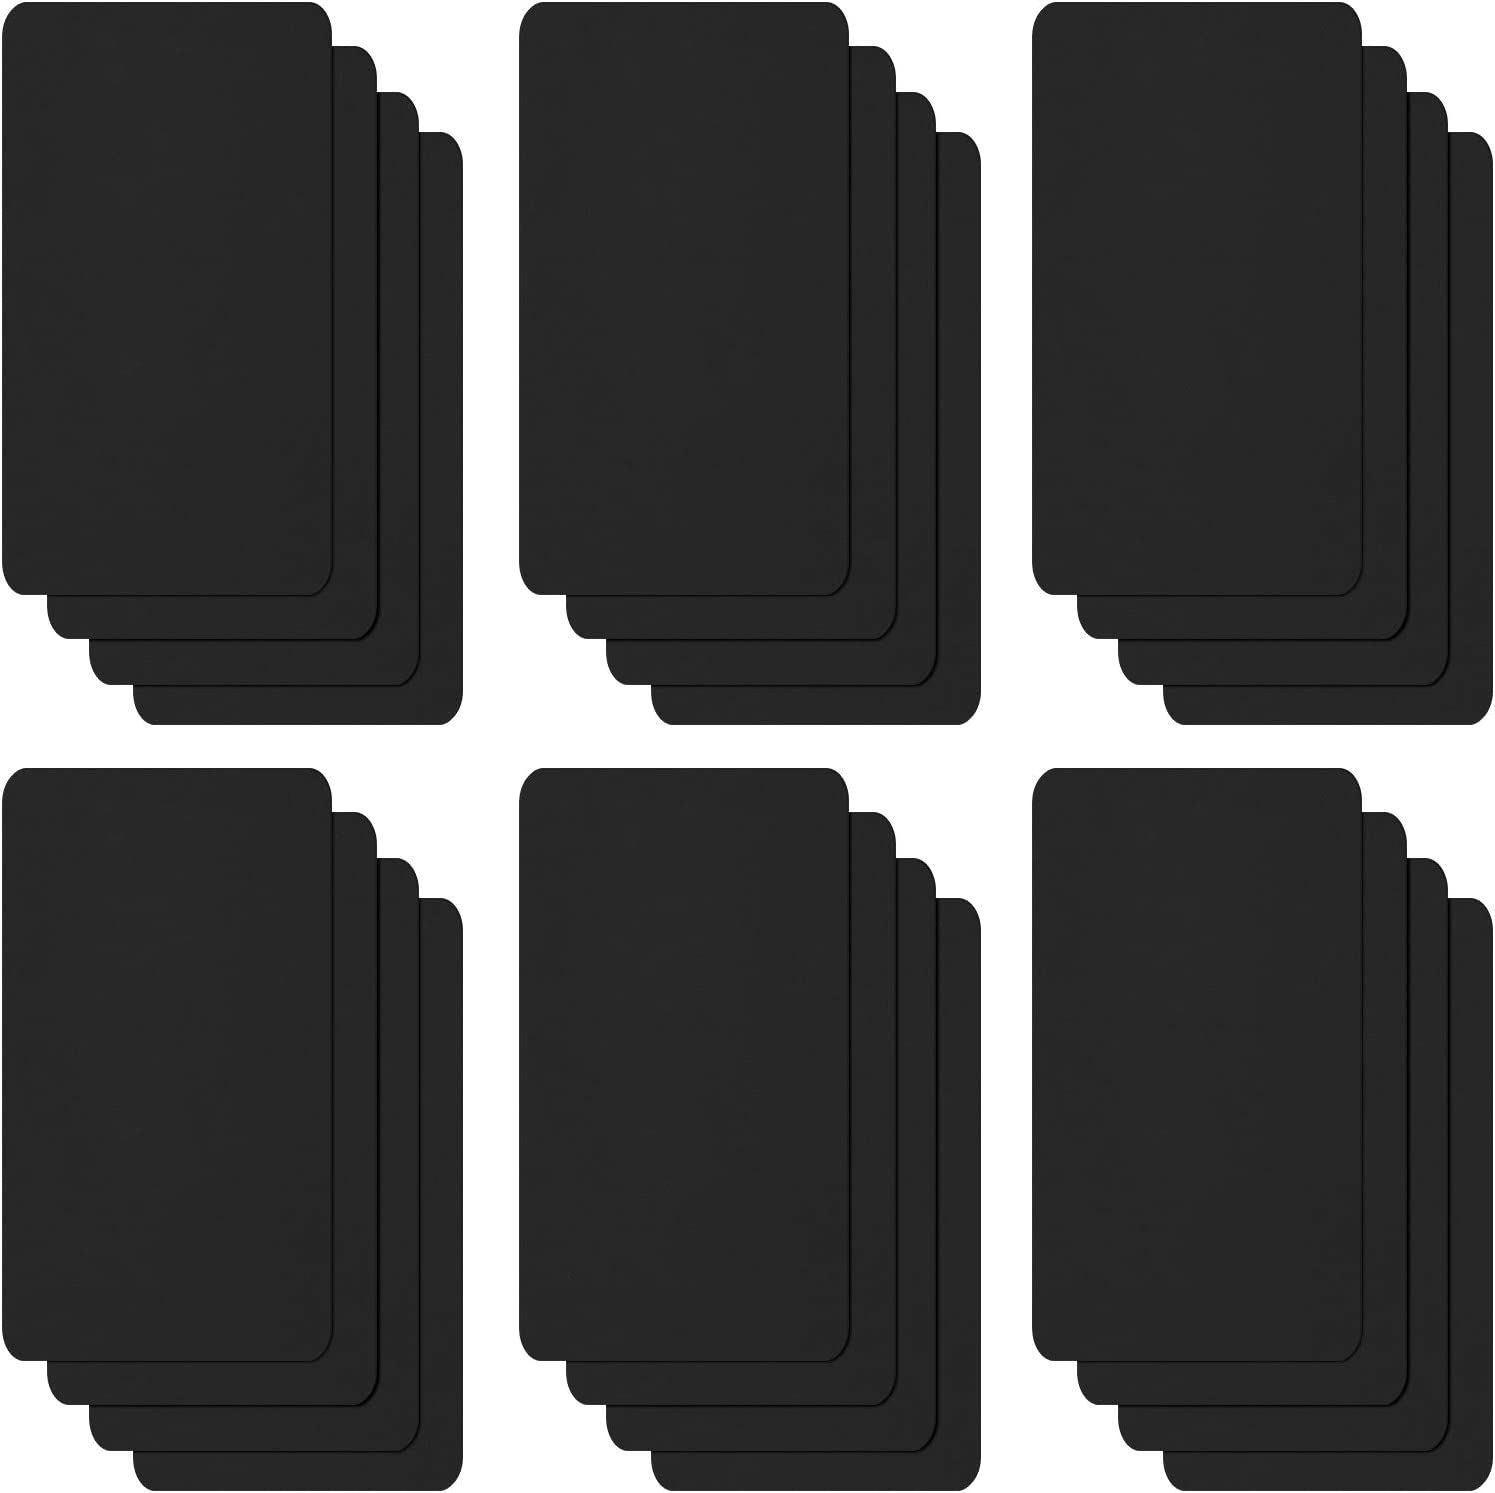 Special sale item 24 Pieces Nylon Repair Waterpr Patch 5 ☆ popular Patches Self-Adhesive